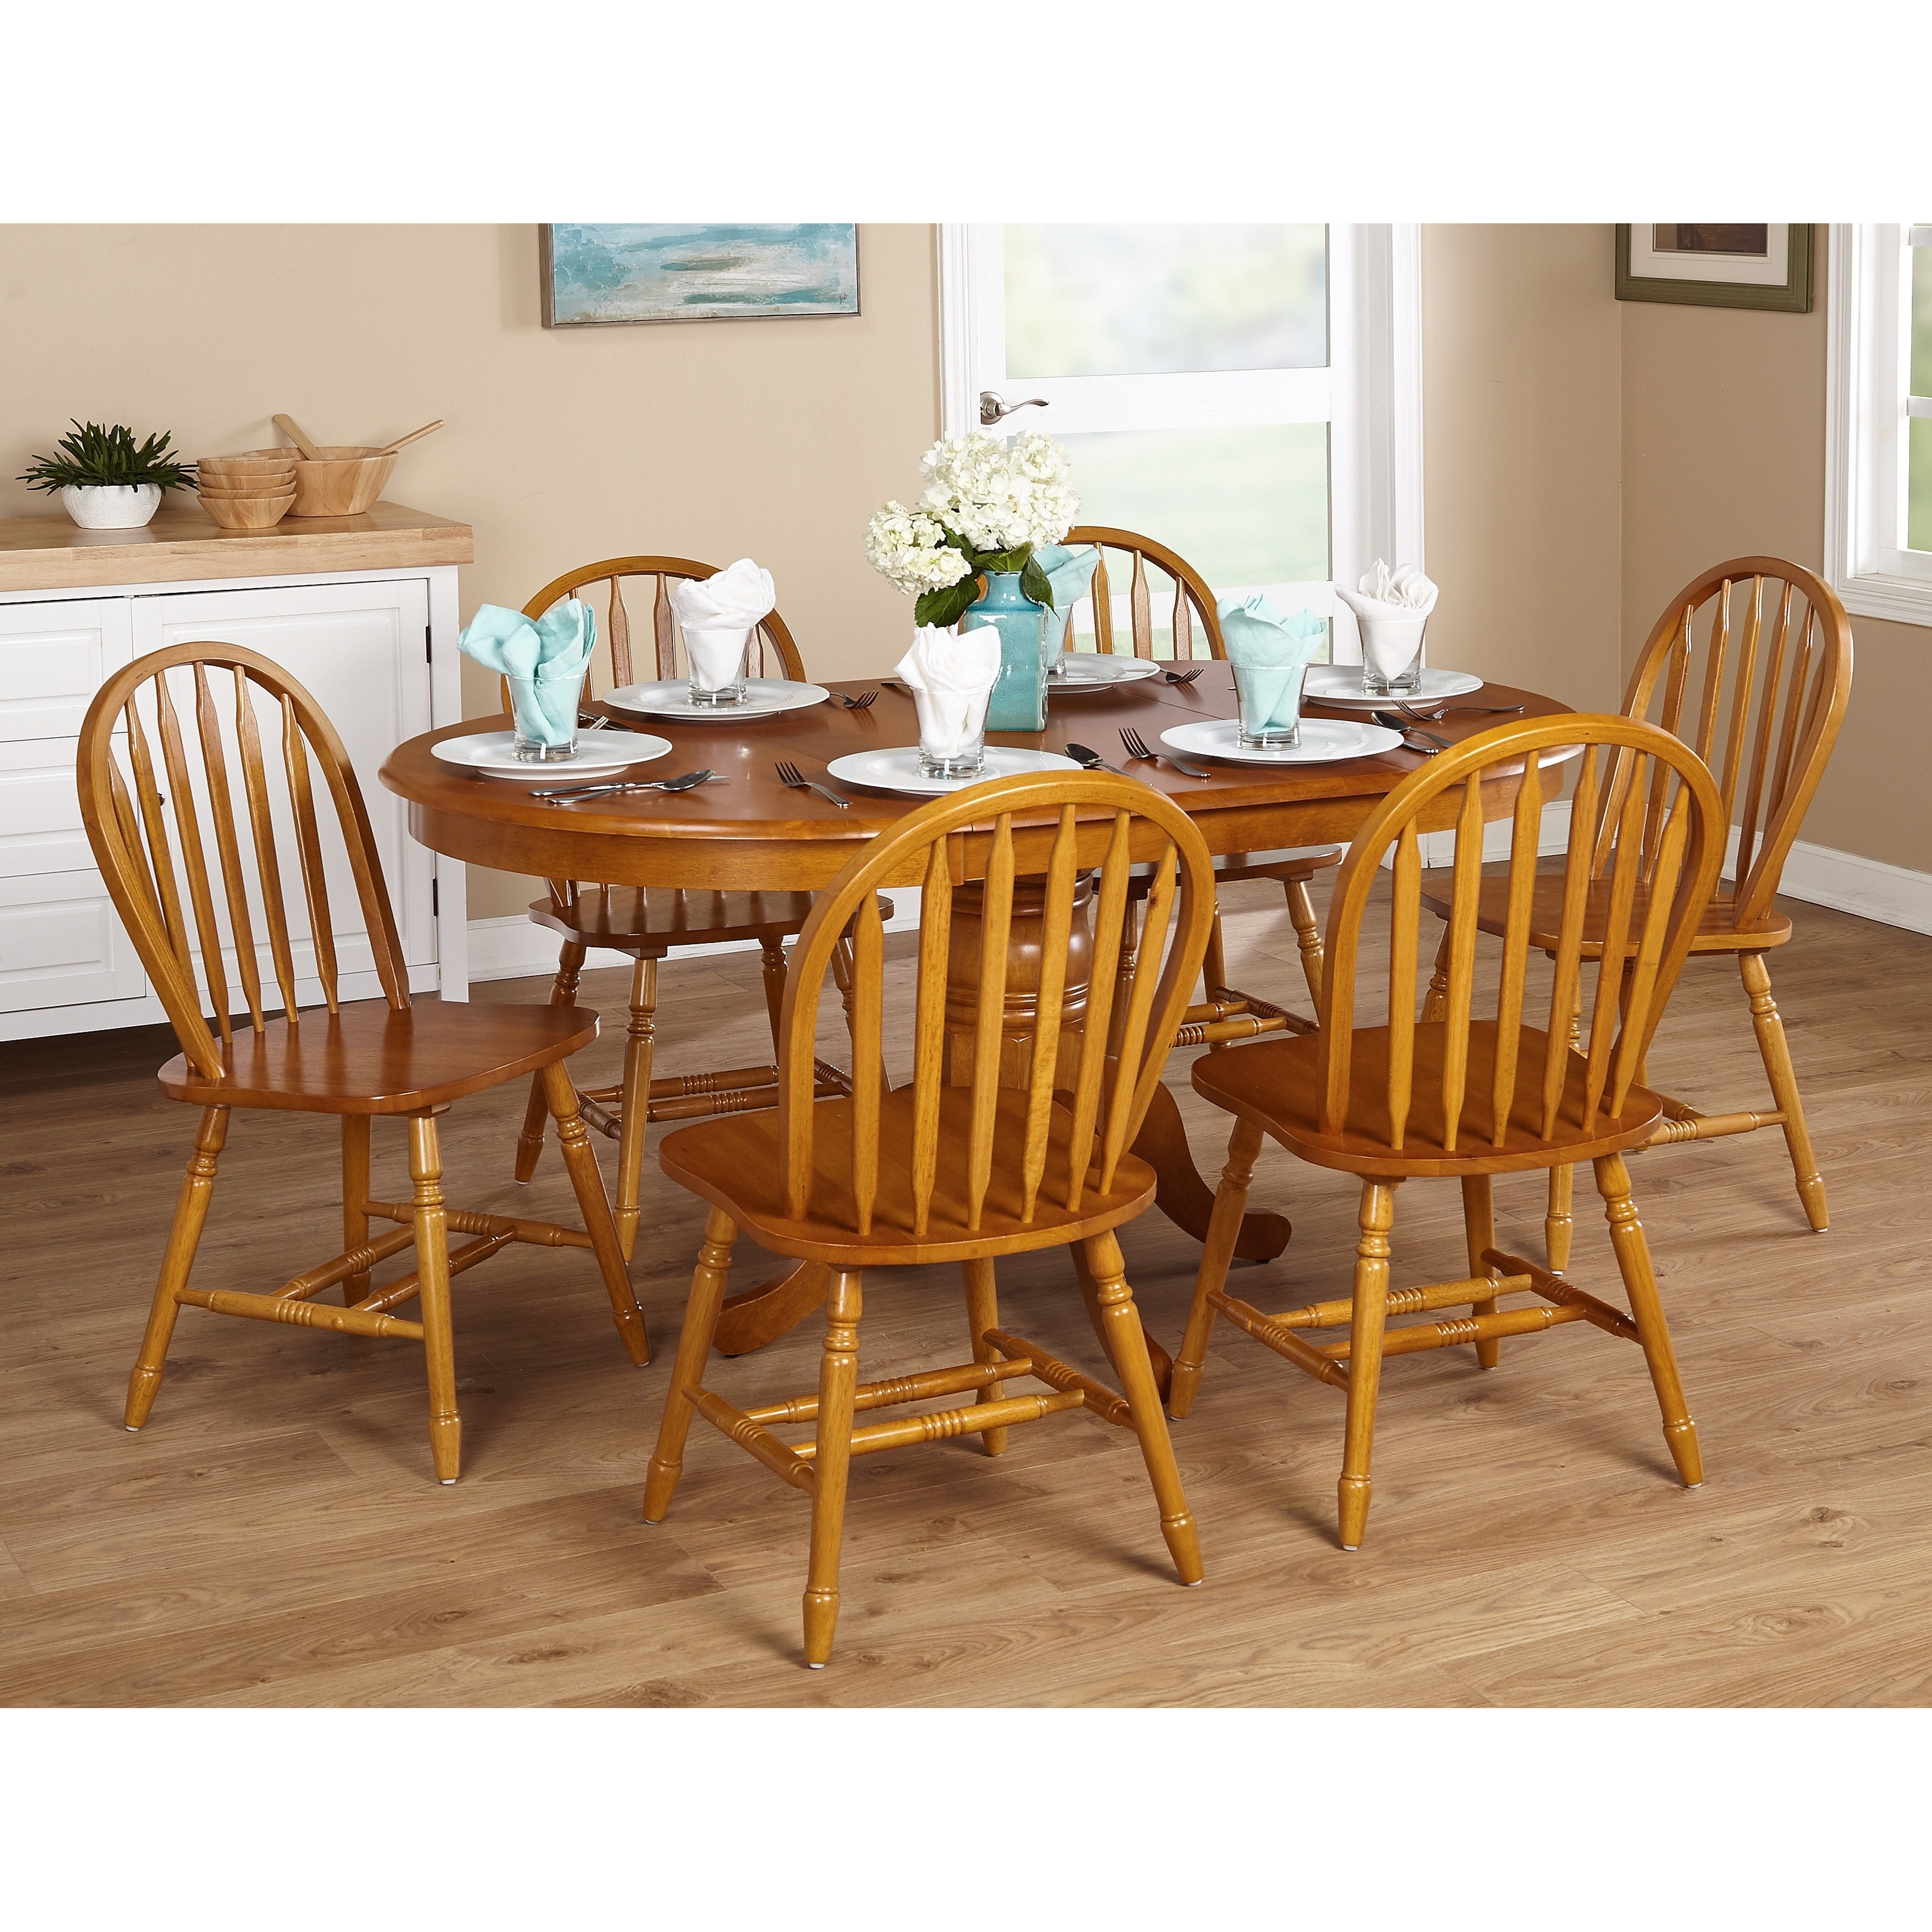 Oak Kitchen Sets: Oak Dining Set 7 Piece Farmhouse Wood Home Room Kitchen